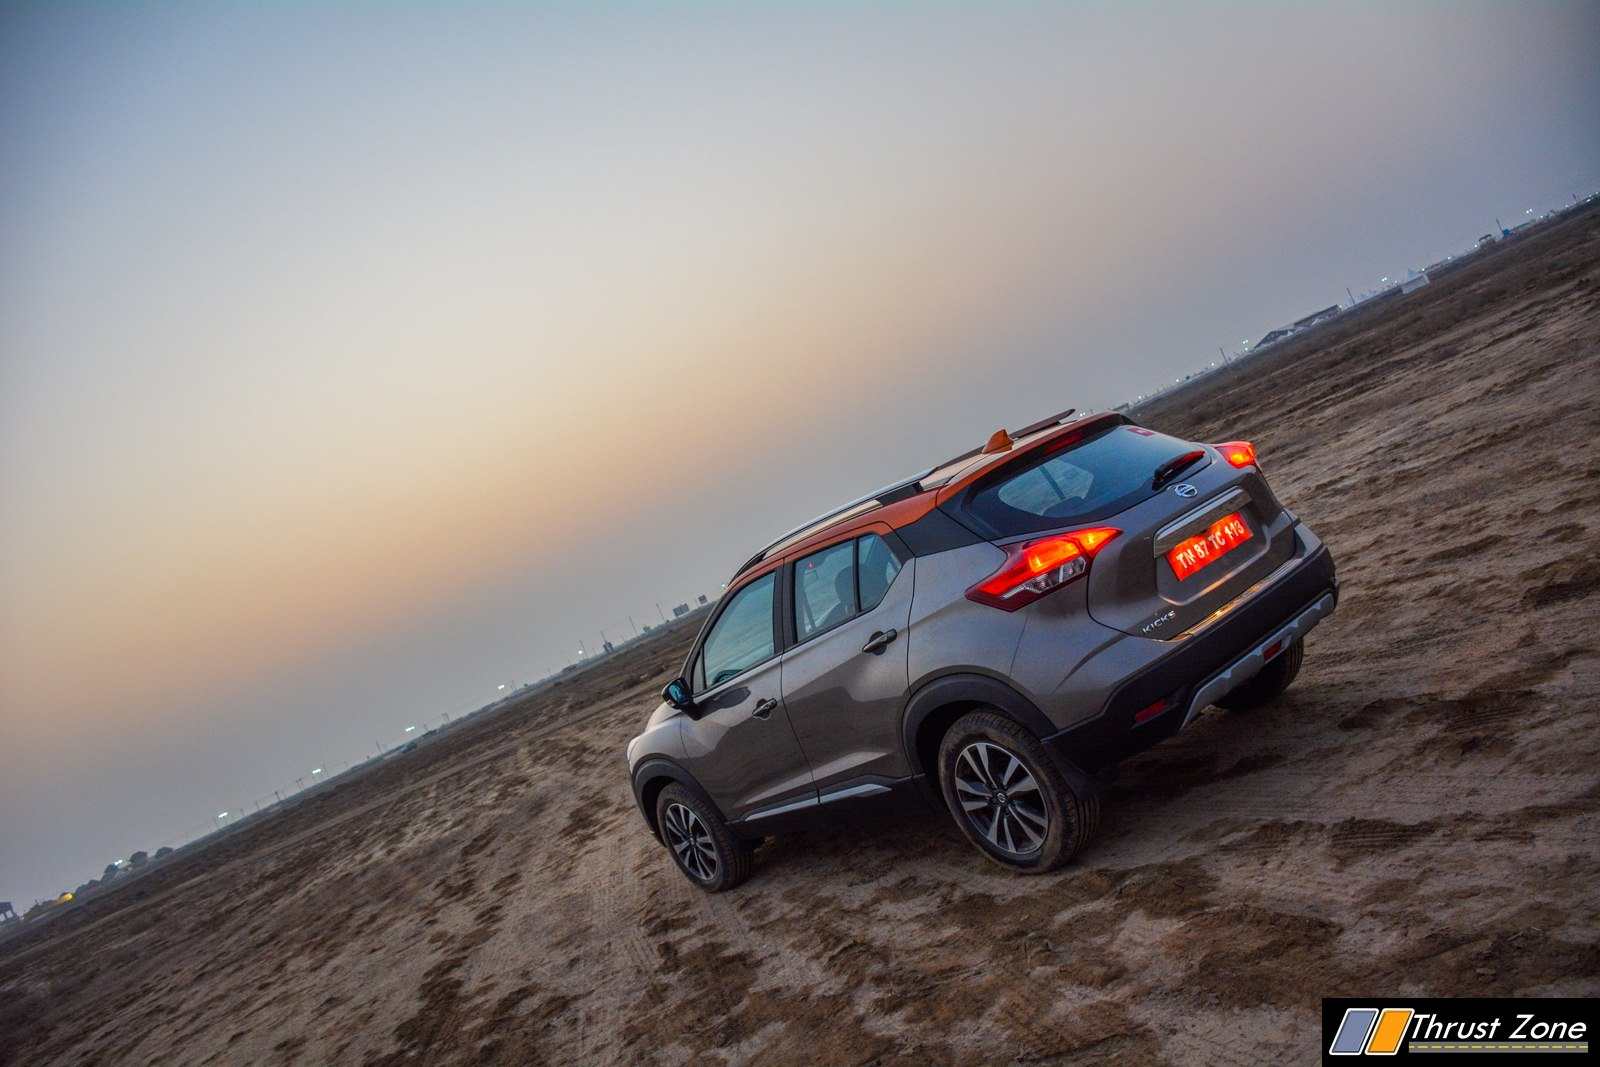 https://www.thrustzone.com/wp-content/uploads/2018/12/Nissan-Kicks-India-Review-Diese-2019l-10.jpg